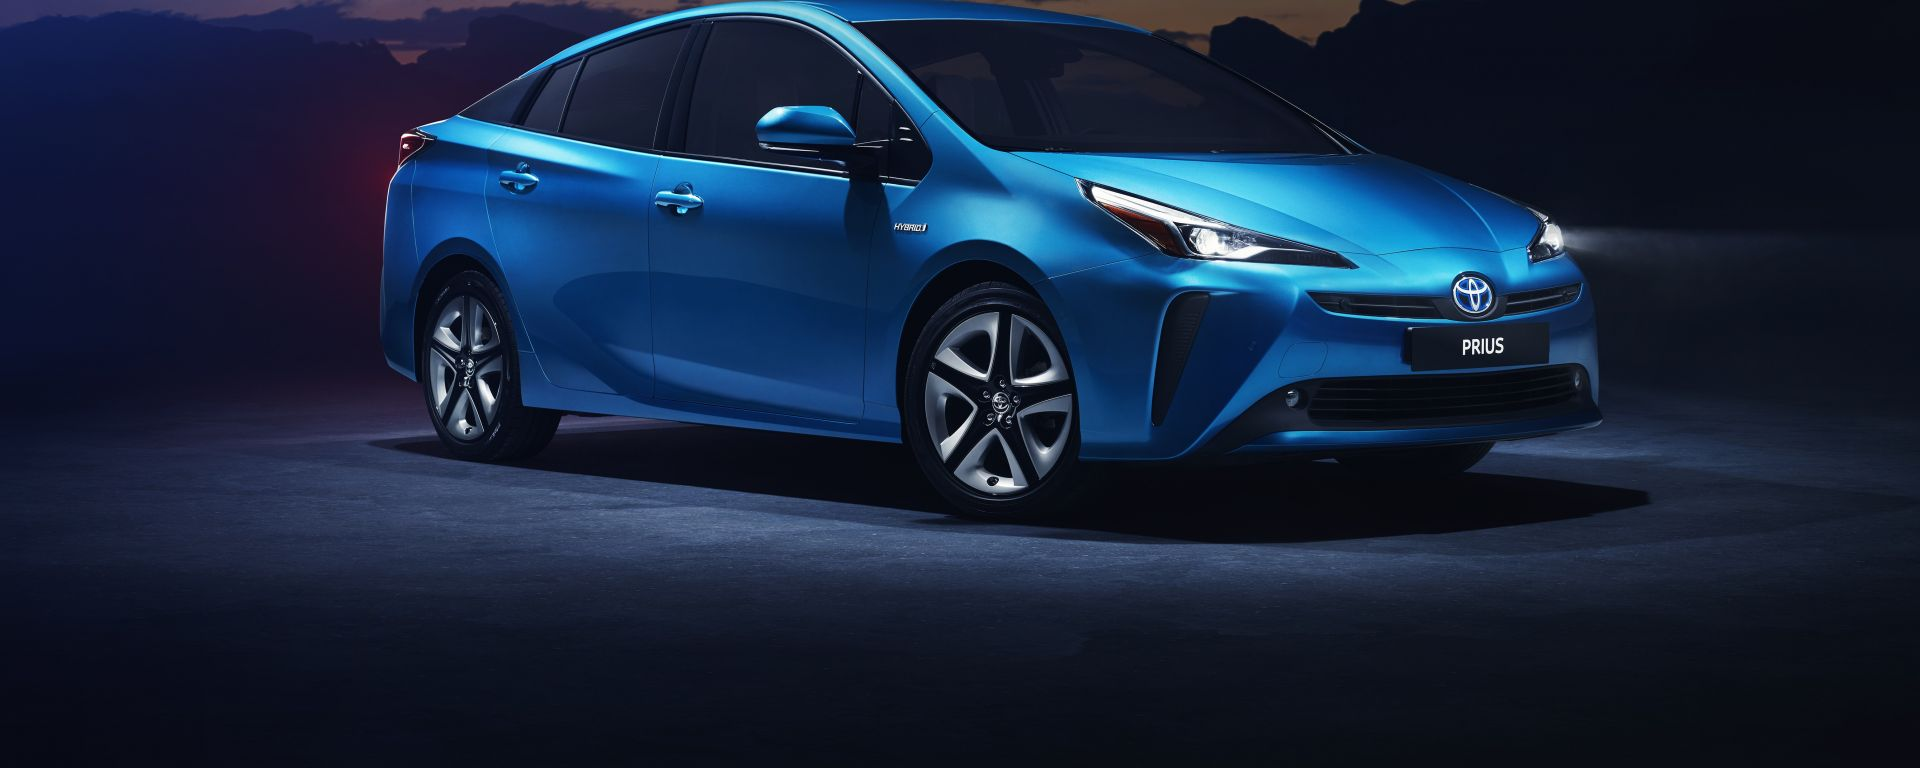 Toyota Prius restyling 2019, anche 4x4